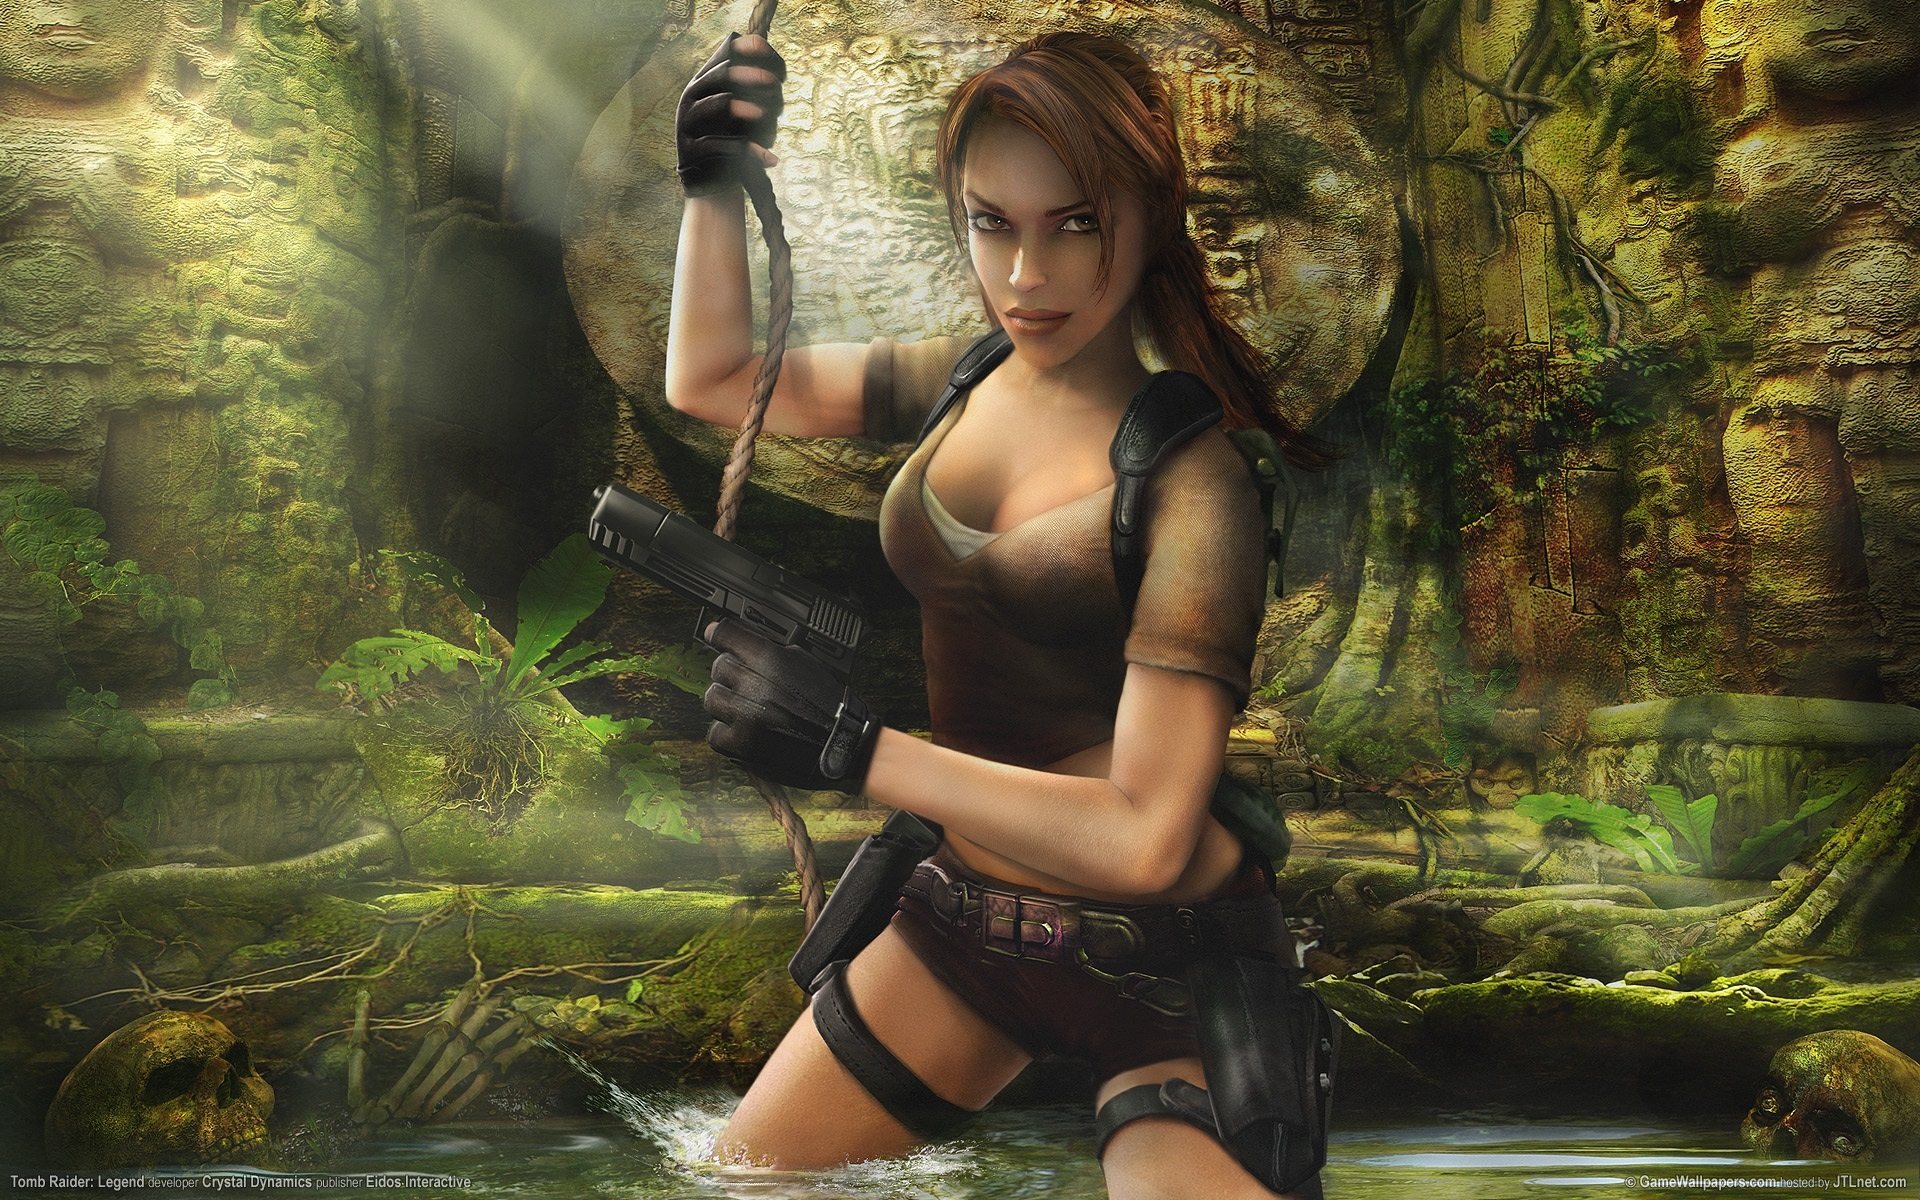 Арт к игре Tomb Raider: Legend